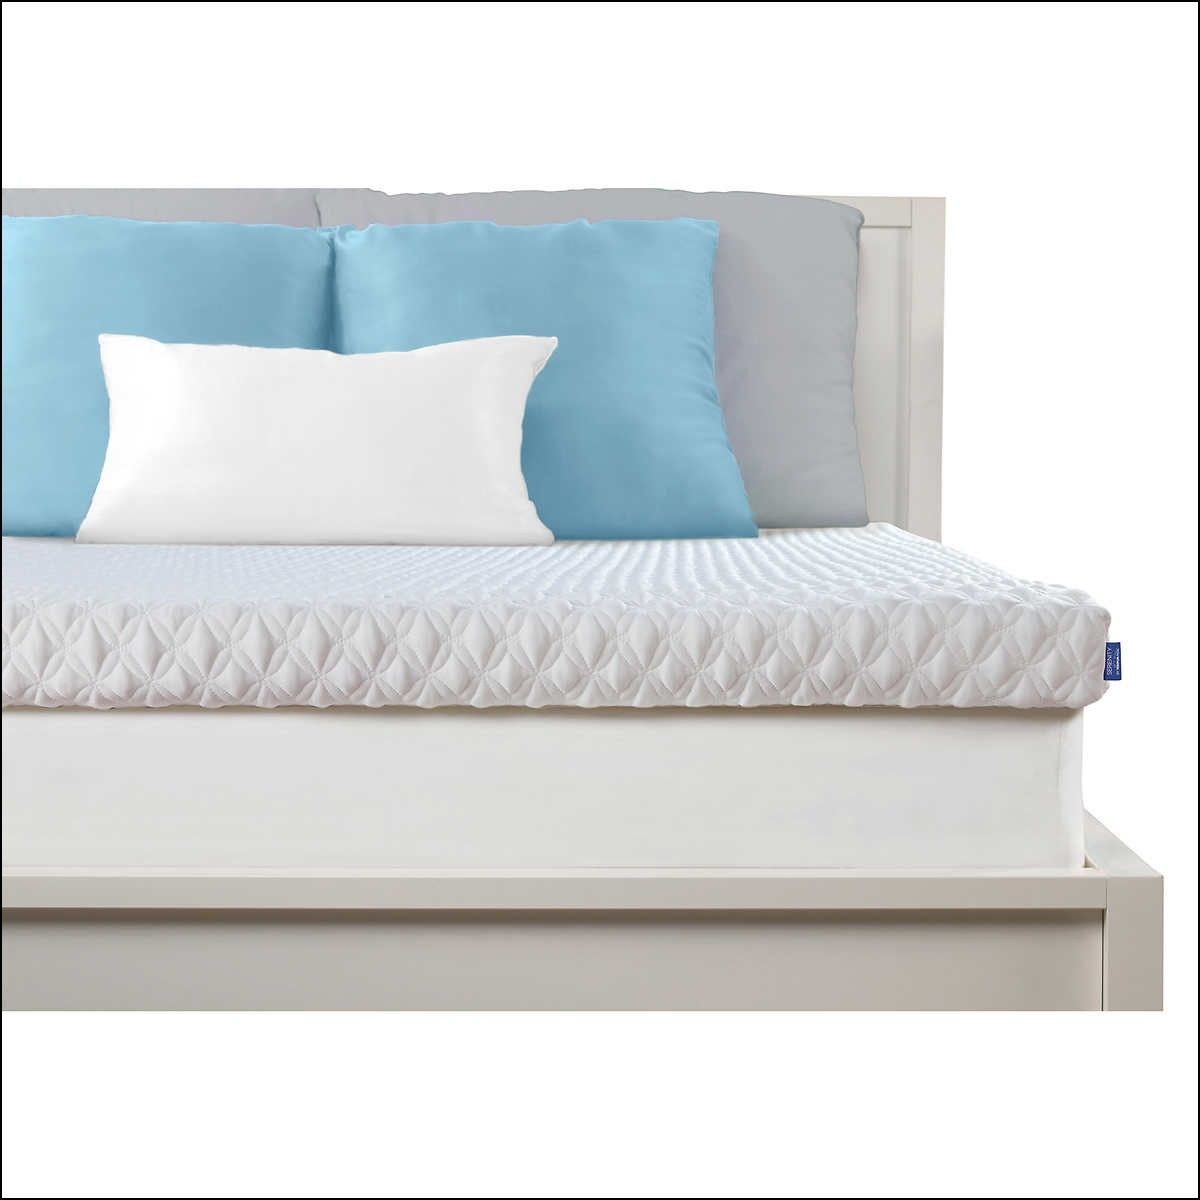 hybrid top and pillow memory topper mattress pads review sleep fiber innovations foam